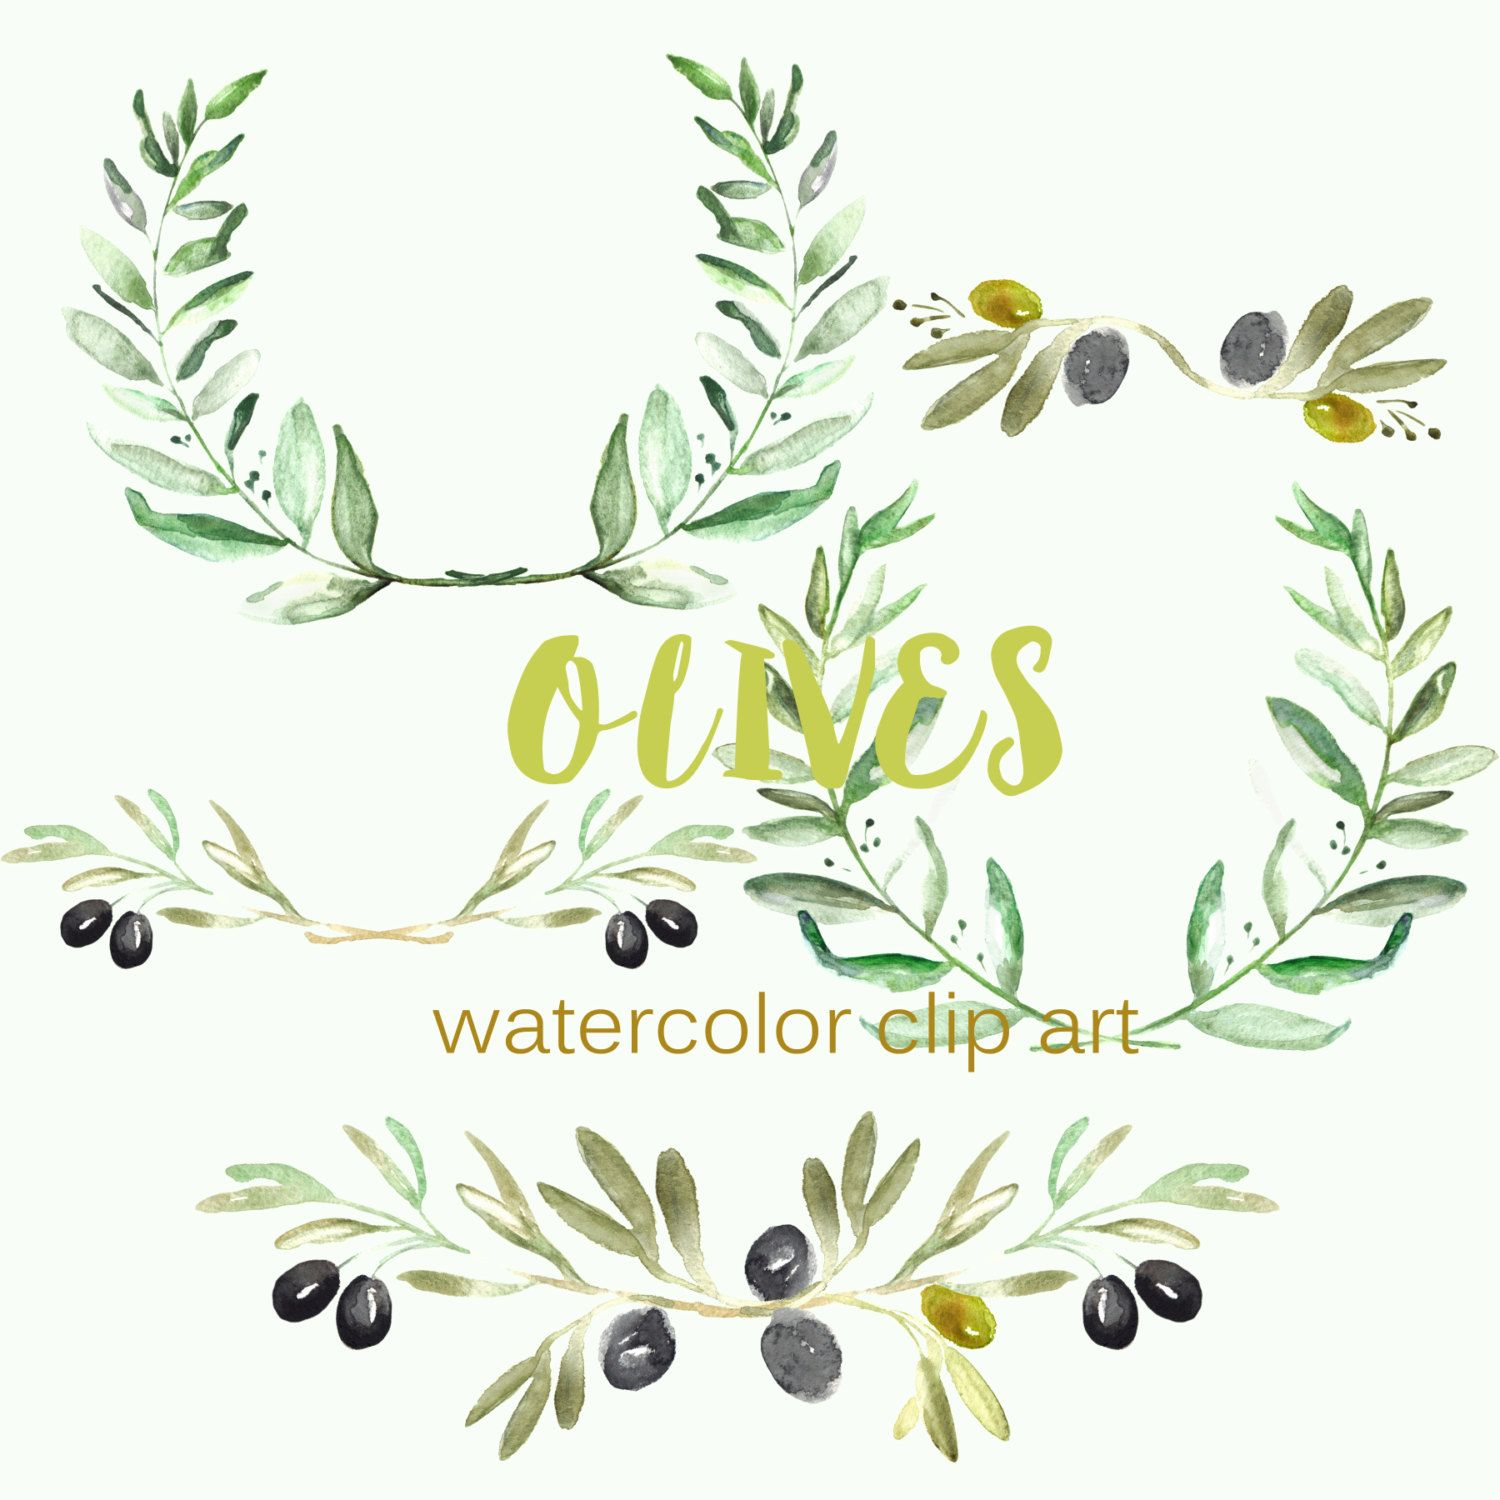 Olives Watercolor Clipart Peinte A La Main Aquarelle Couleurs